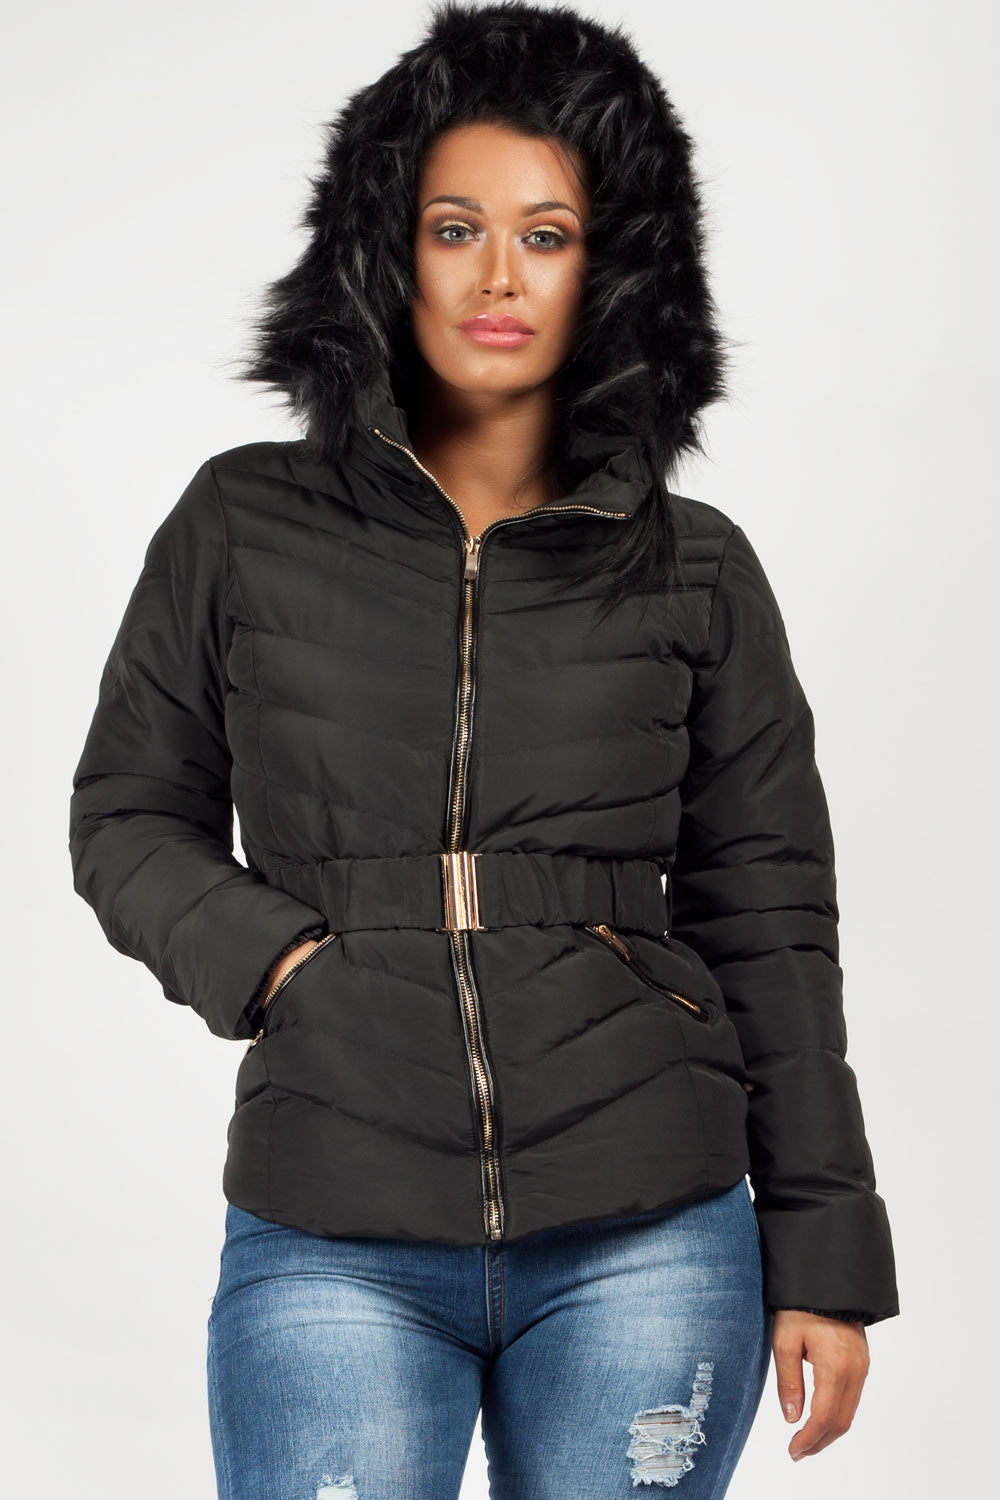 womens puffer zara jacket black